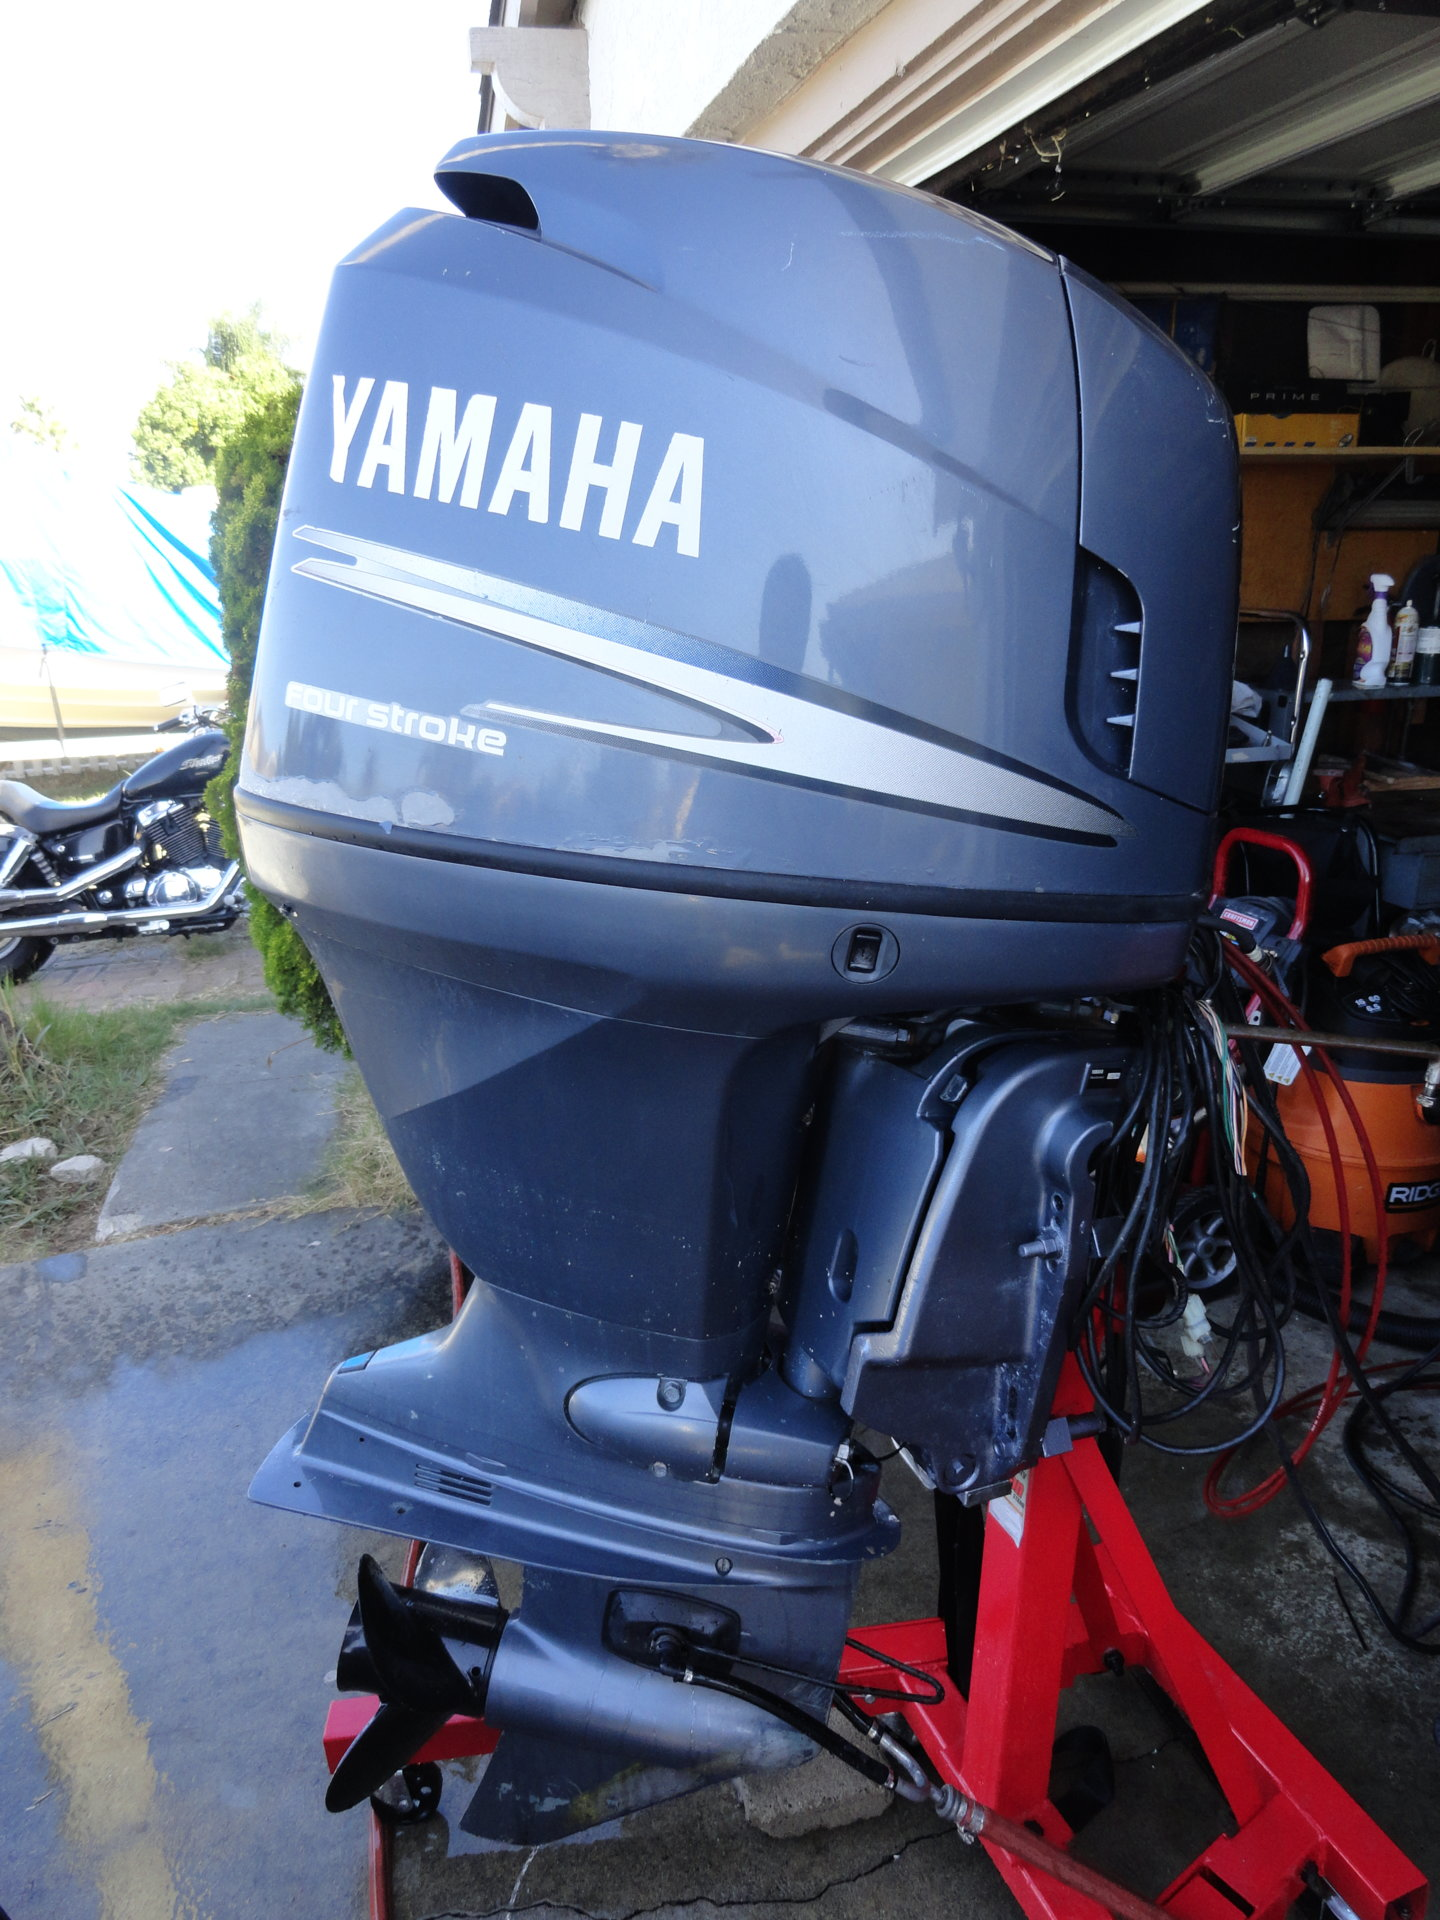 Yamaha F115 Fourstroke Outboard Fuel Injected   Full Service